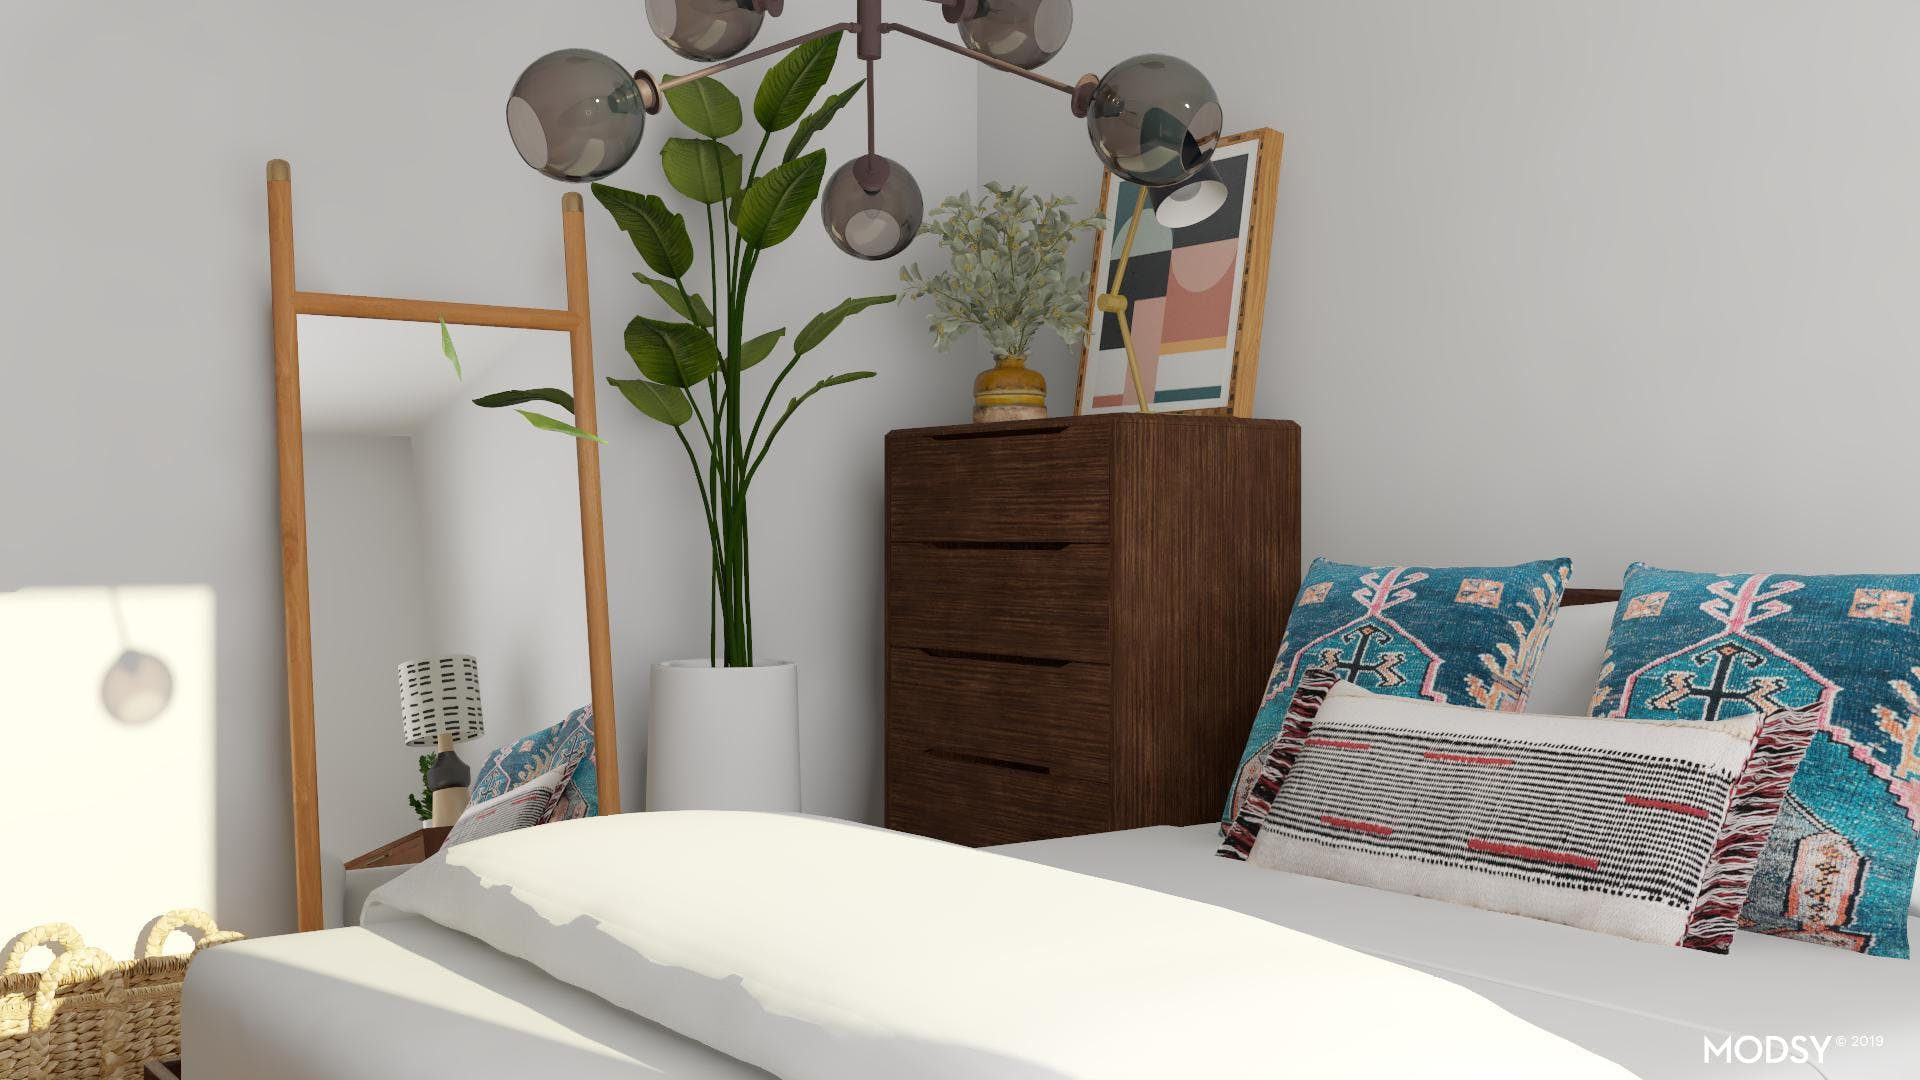 Eclectic Elements: The Complete Look